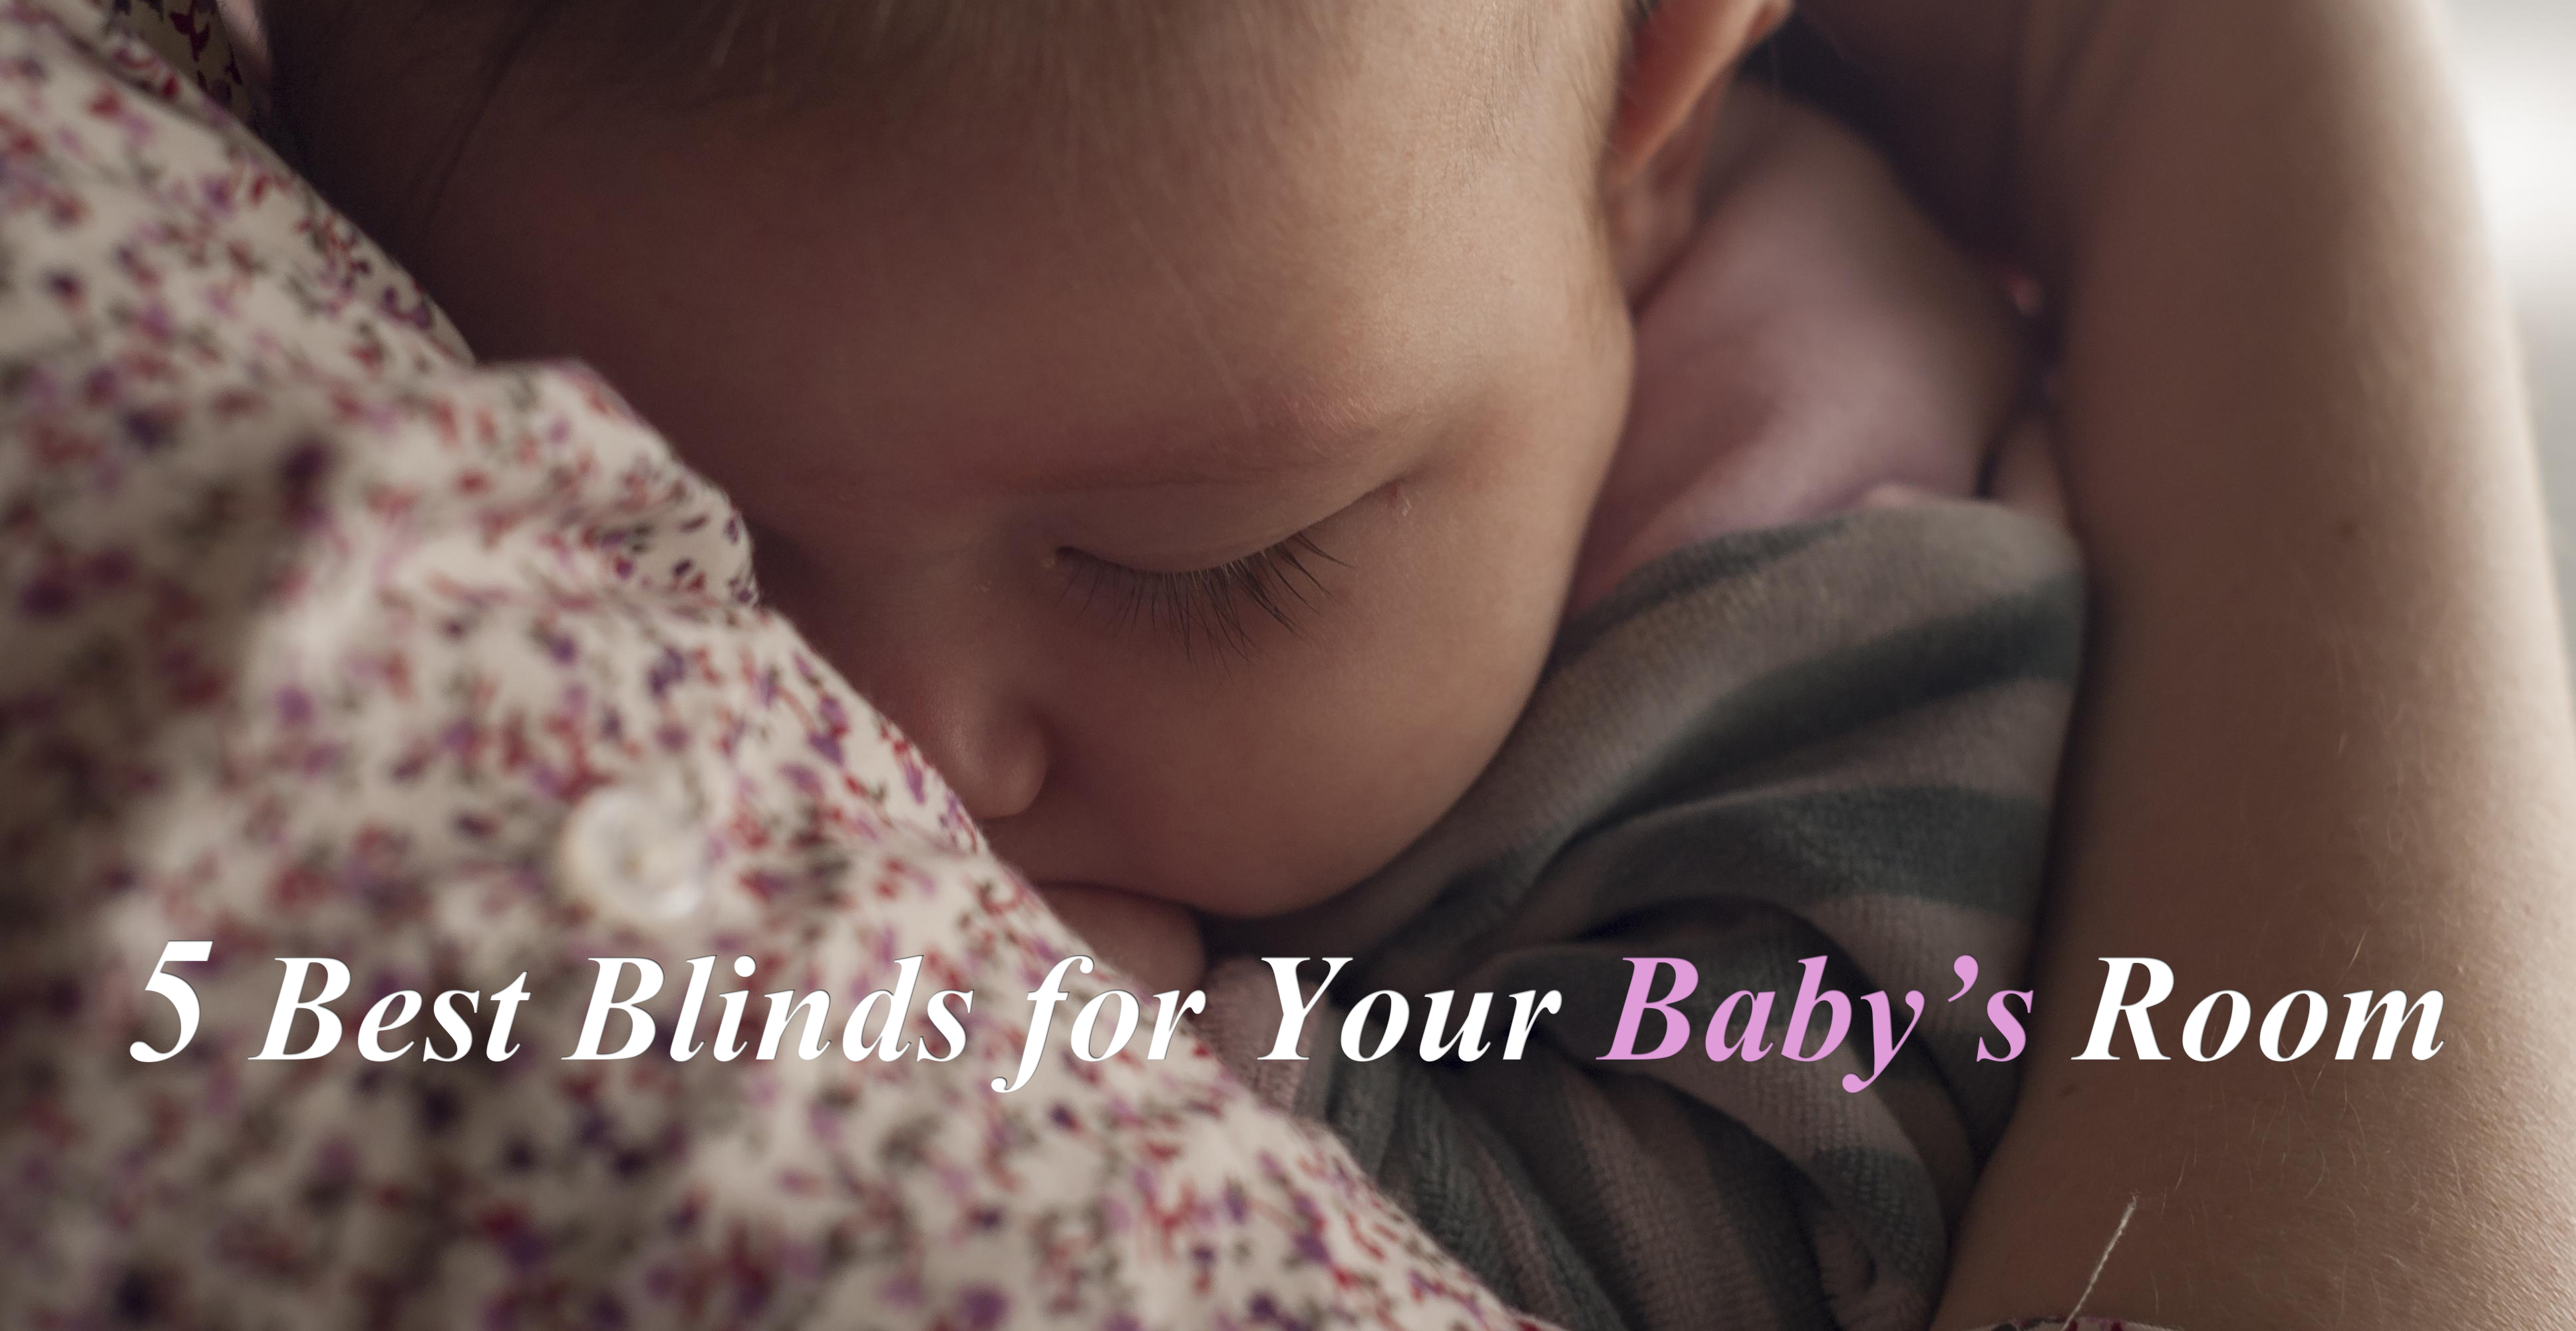 5 Best Blinds for Your Baby's Room